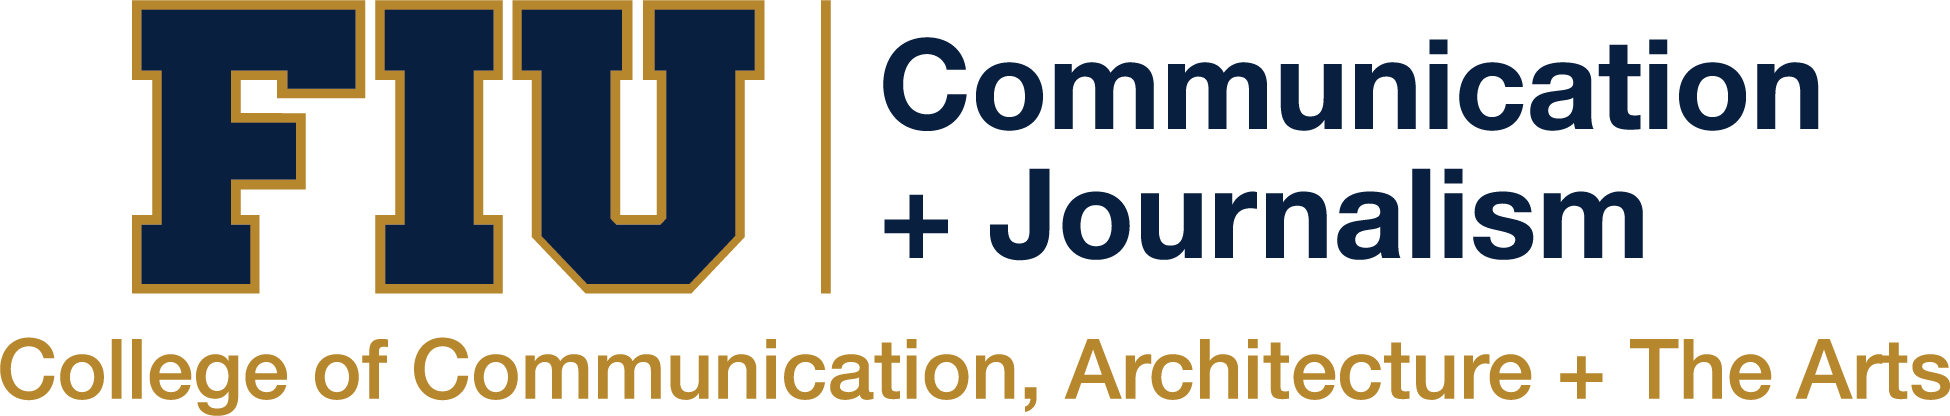 School of Communication + Journalism Logo